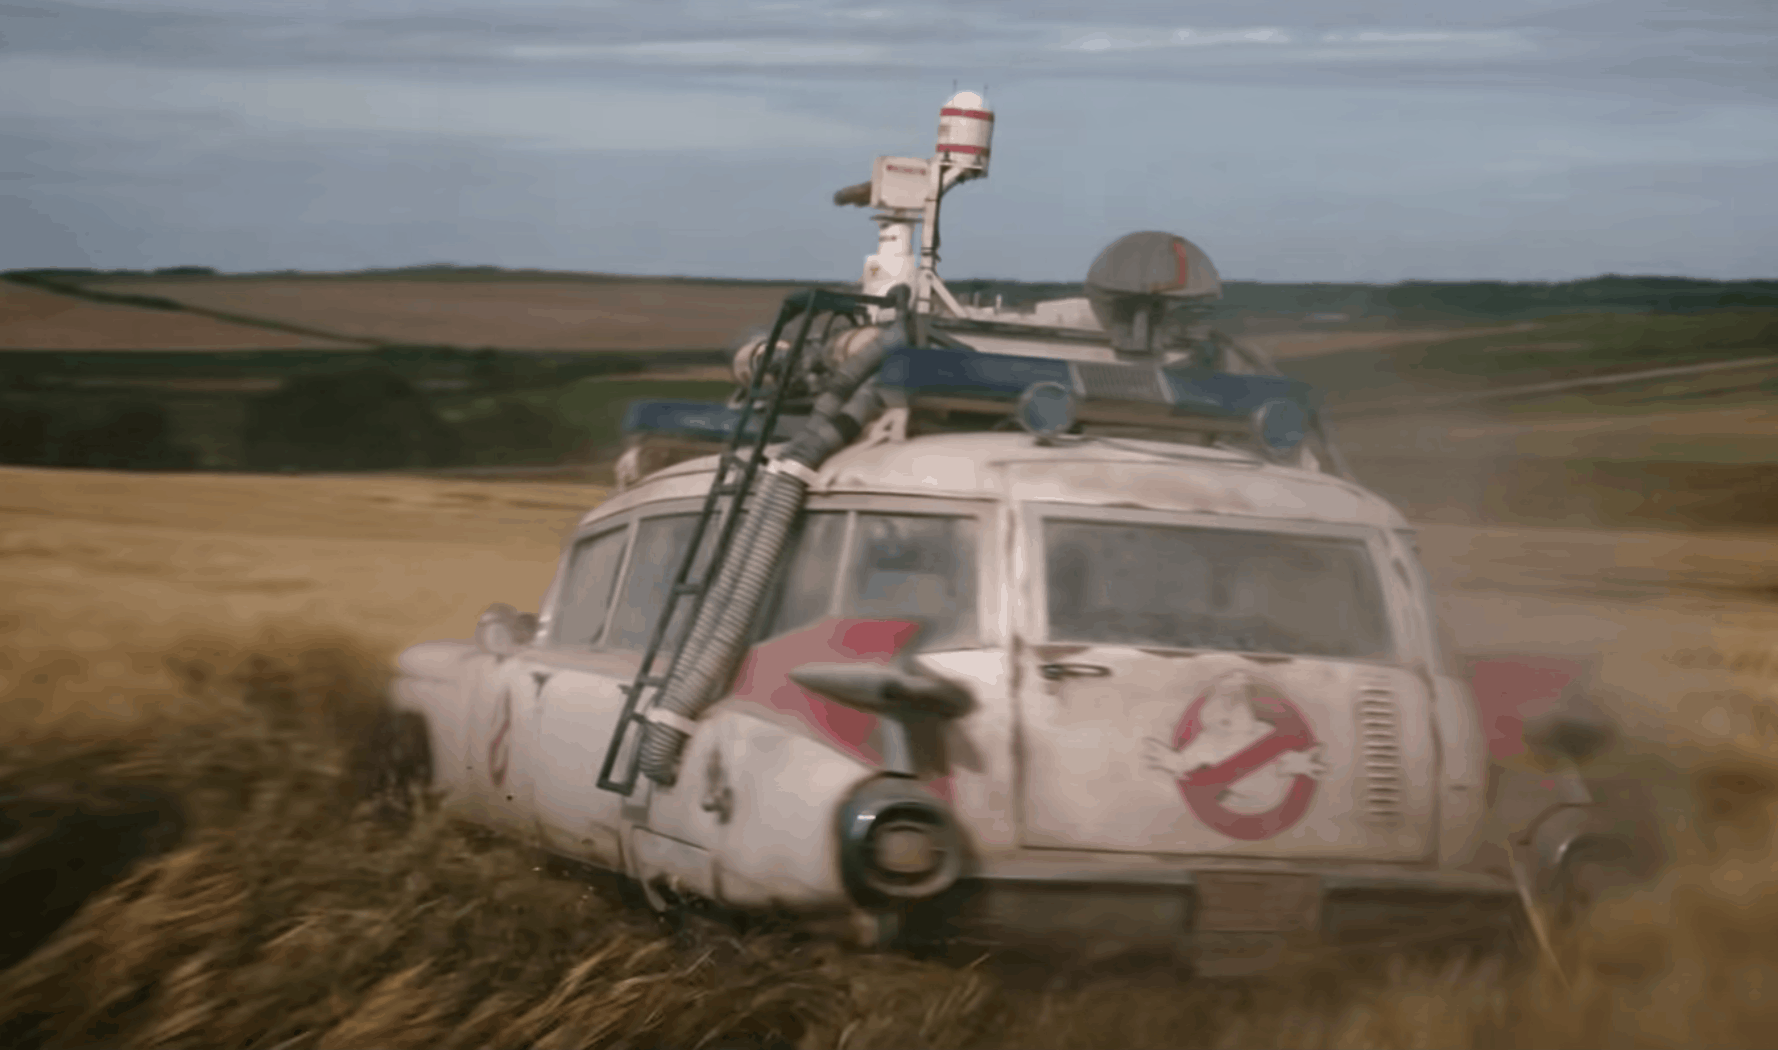 Ghostbusters Ecto1 Afterlife movie field drifting